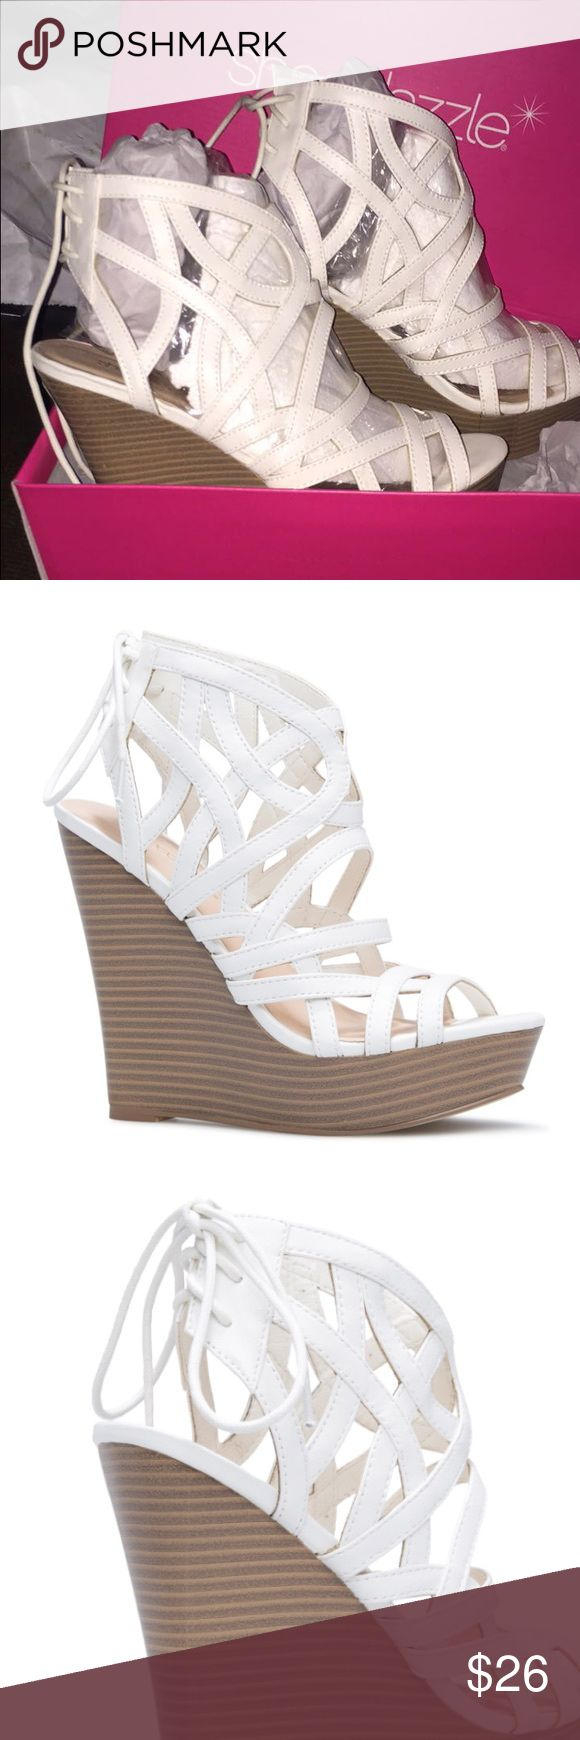 NWT SHOEDAZZLE WEDGES Super cute! I bought them for a wedding and they are just too high of a heel for me! Never worn only tried on, lace up in the back, stickers still on the bottom. I payed $60 because I didn't want the VIP MEMBERSHIP, will come with box and all the packaging shown! Only 2 left in stock online! MAKE AN OFFER!!! Shoe Dazzle Shoes Wedges